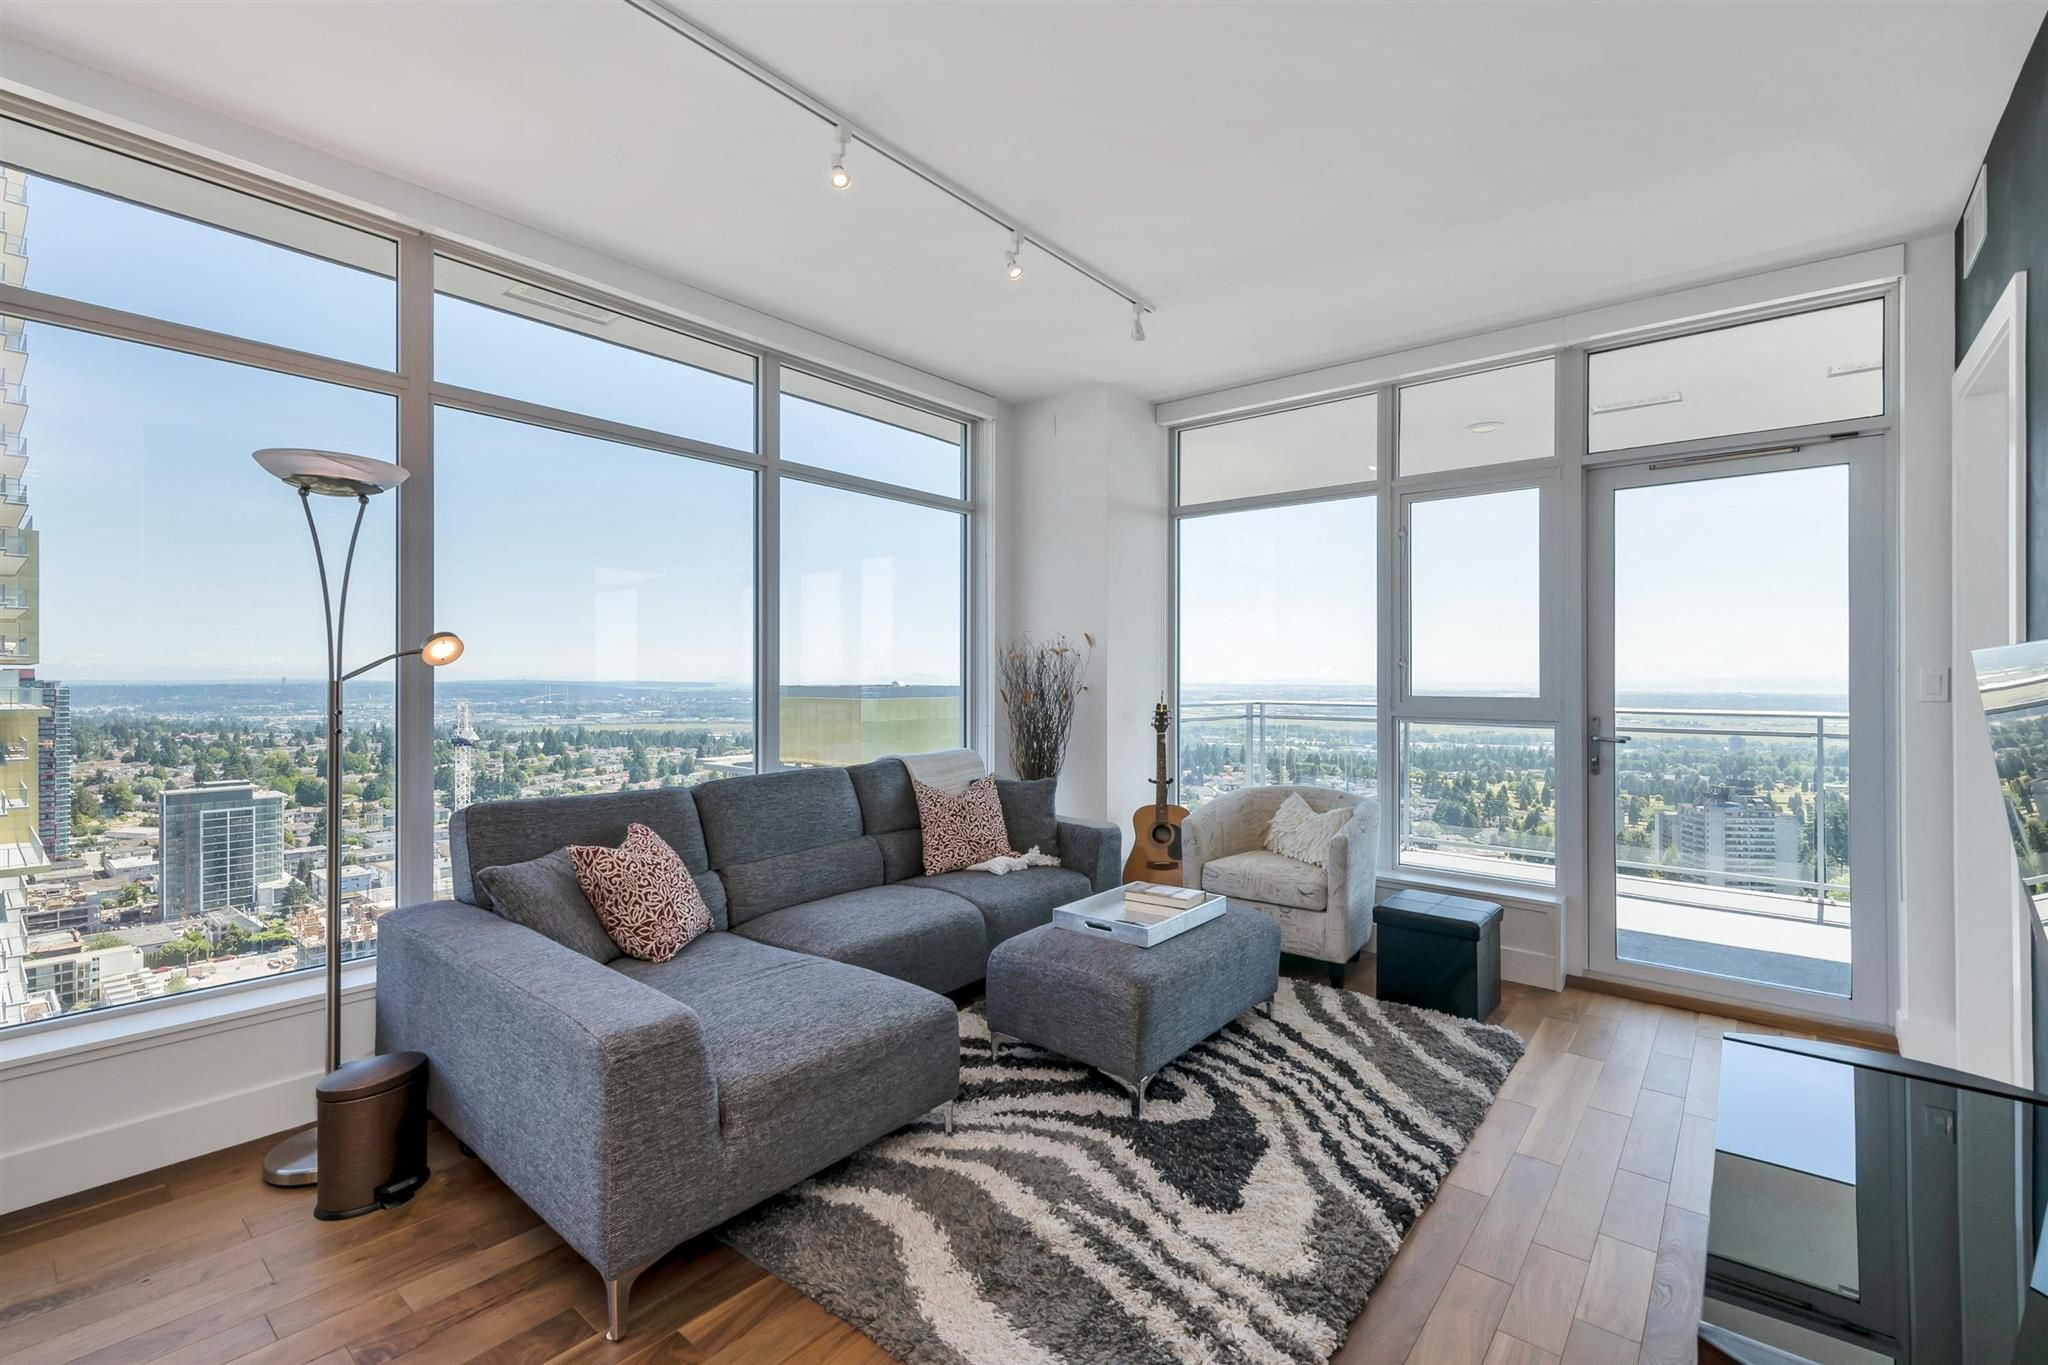 """Main Photo: 3205 4360 BERESFORD Street in Burnaby: Metrotown Condo for sale in """"MODELLO"""" (Burnaby South)  : MLS®# R2596767"""